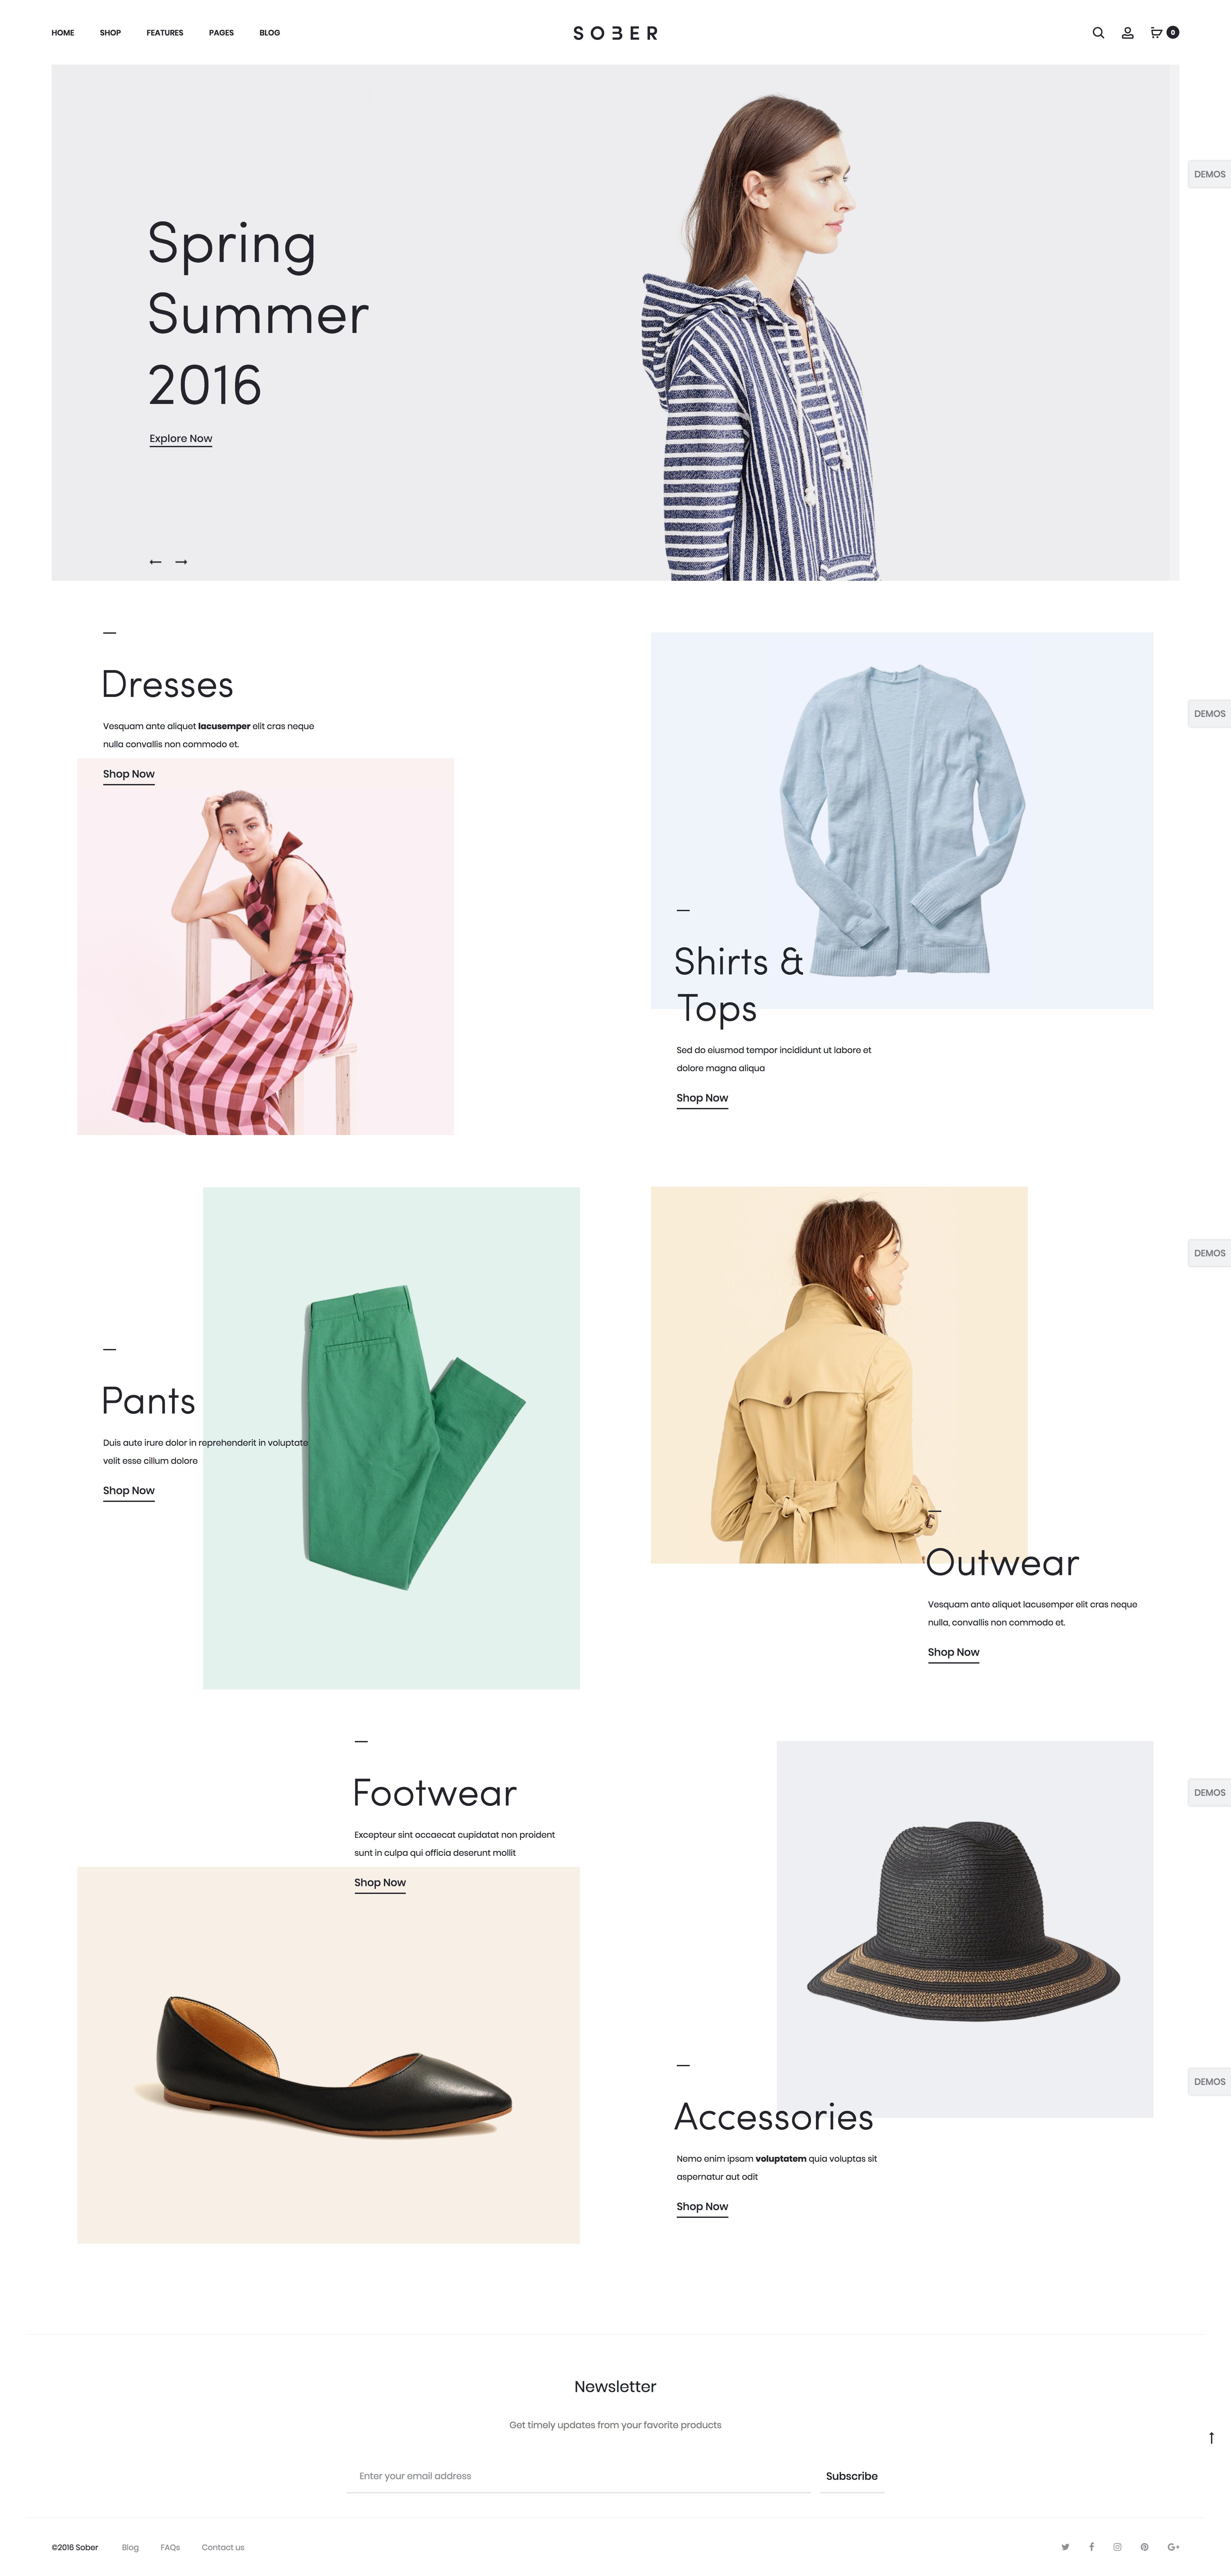 74a6f8a6c0e Fashion Website Layout for Shopping Online. Ecommerce Template. WordPress  WooCommerce Theme. Clothing or Apparel Store. Creative